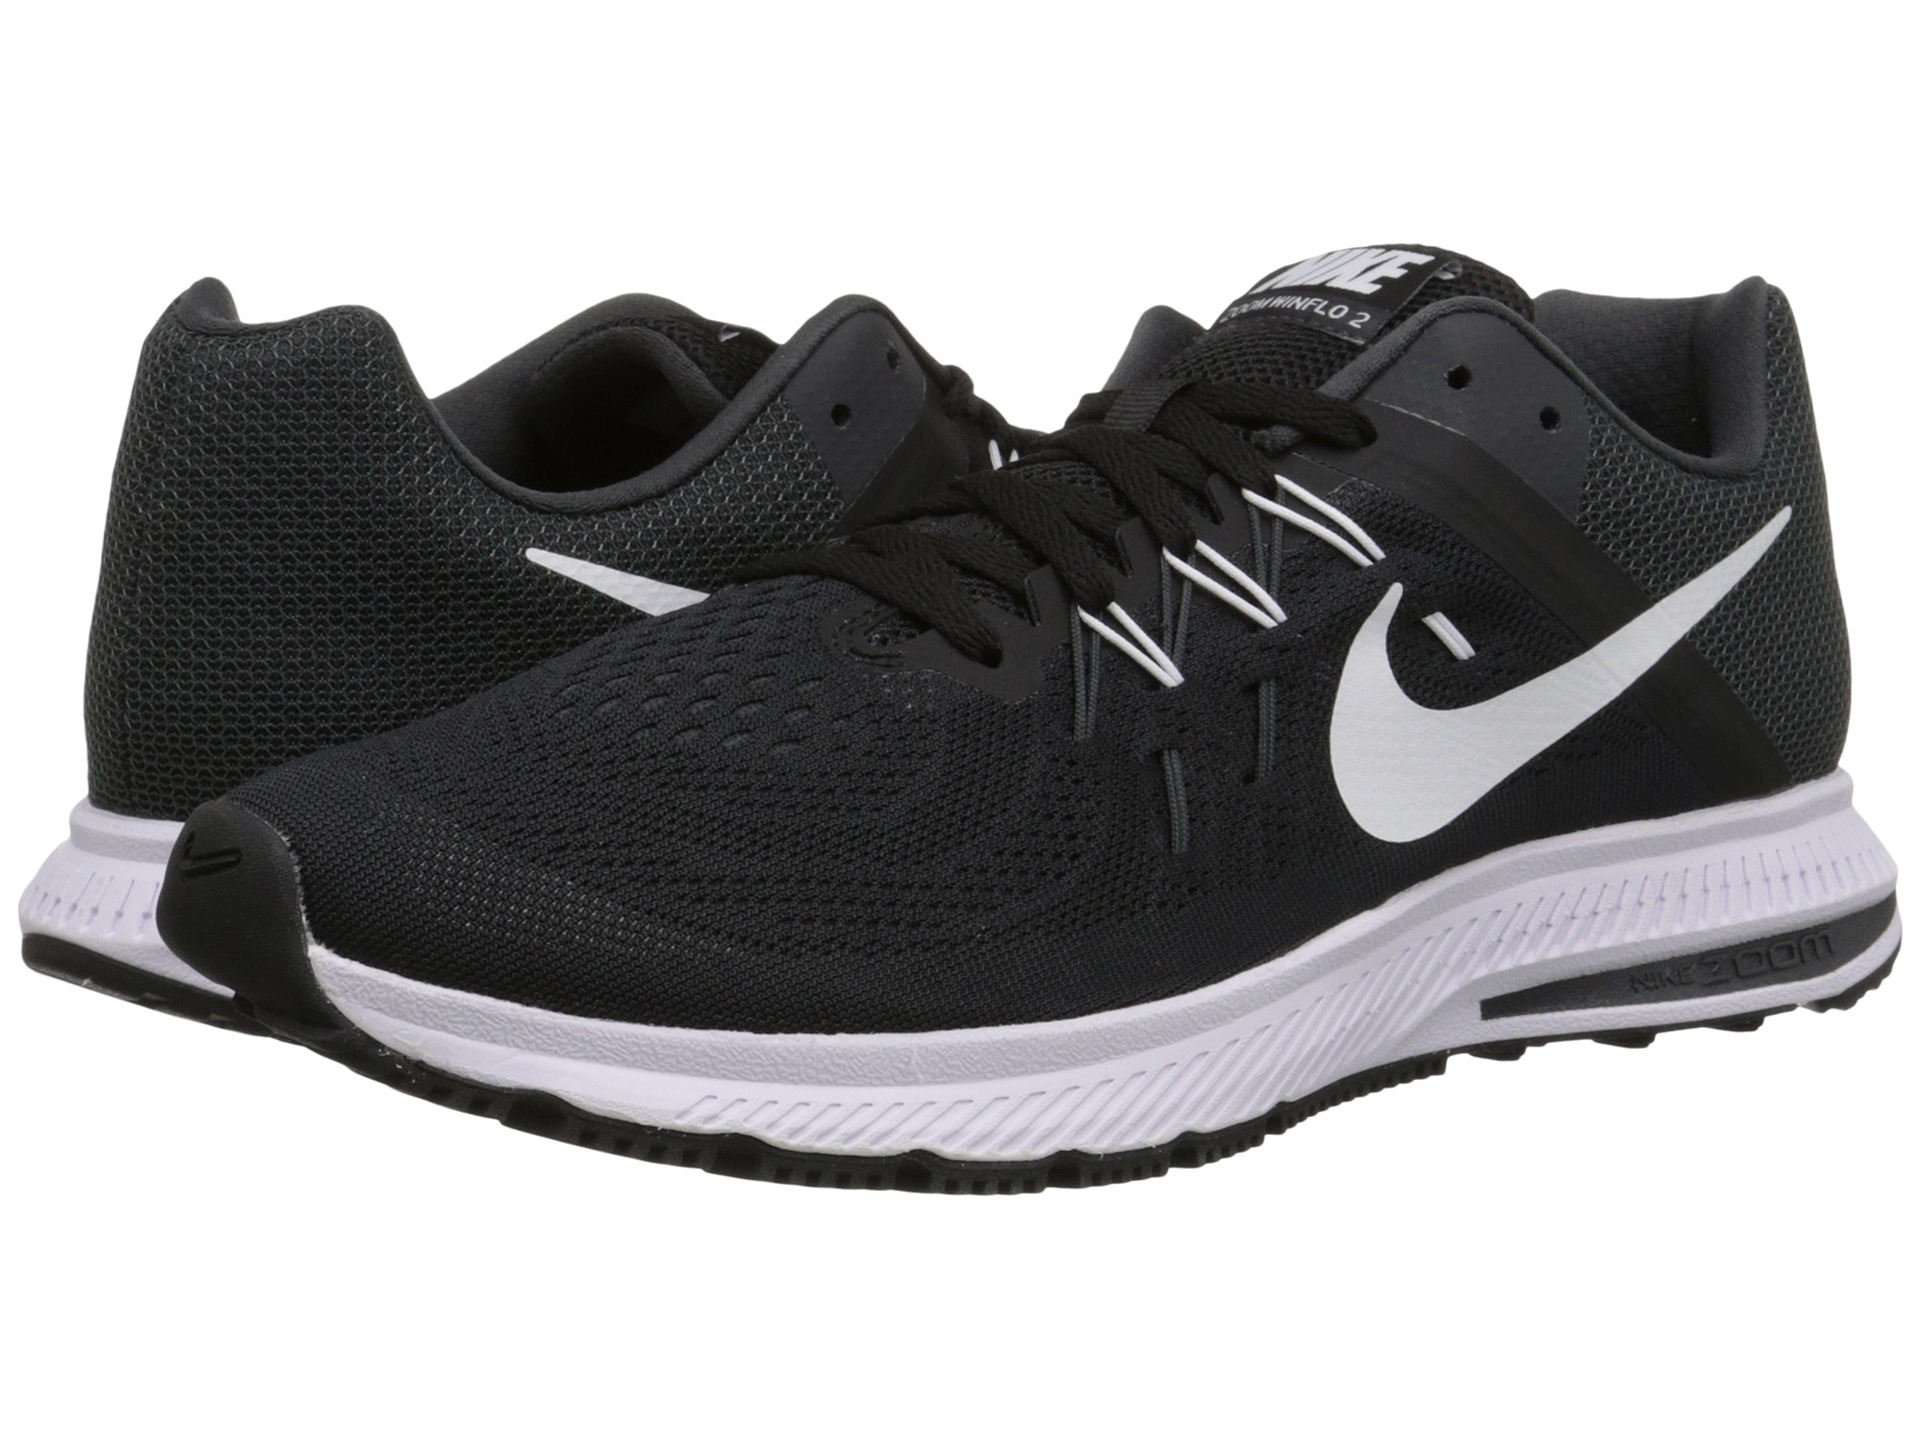 Citaten Zoon Free : Nike zoom winflo dark grey soar white black zappos